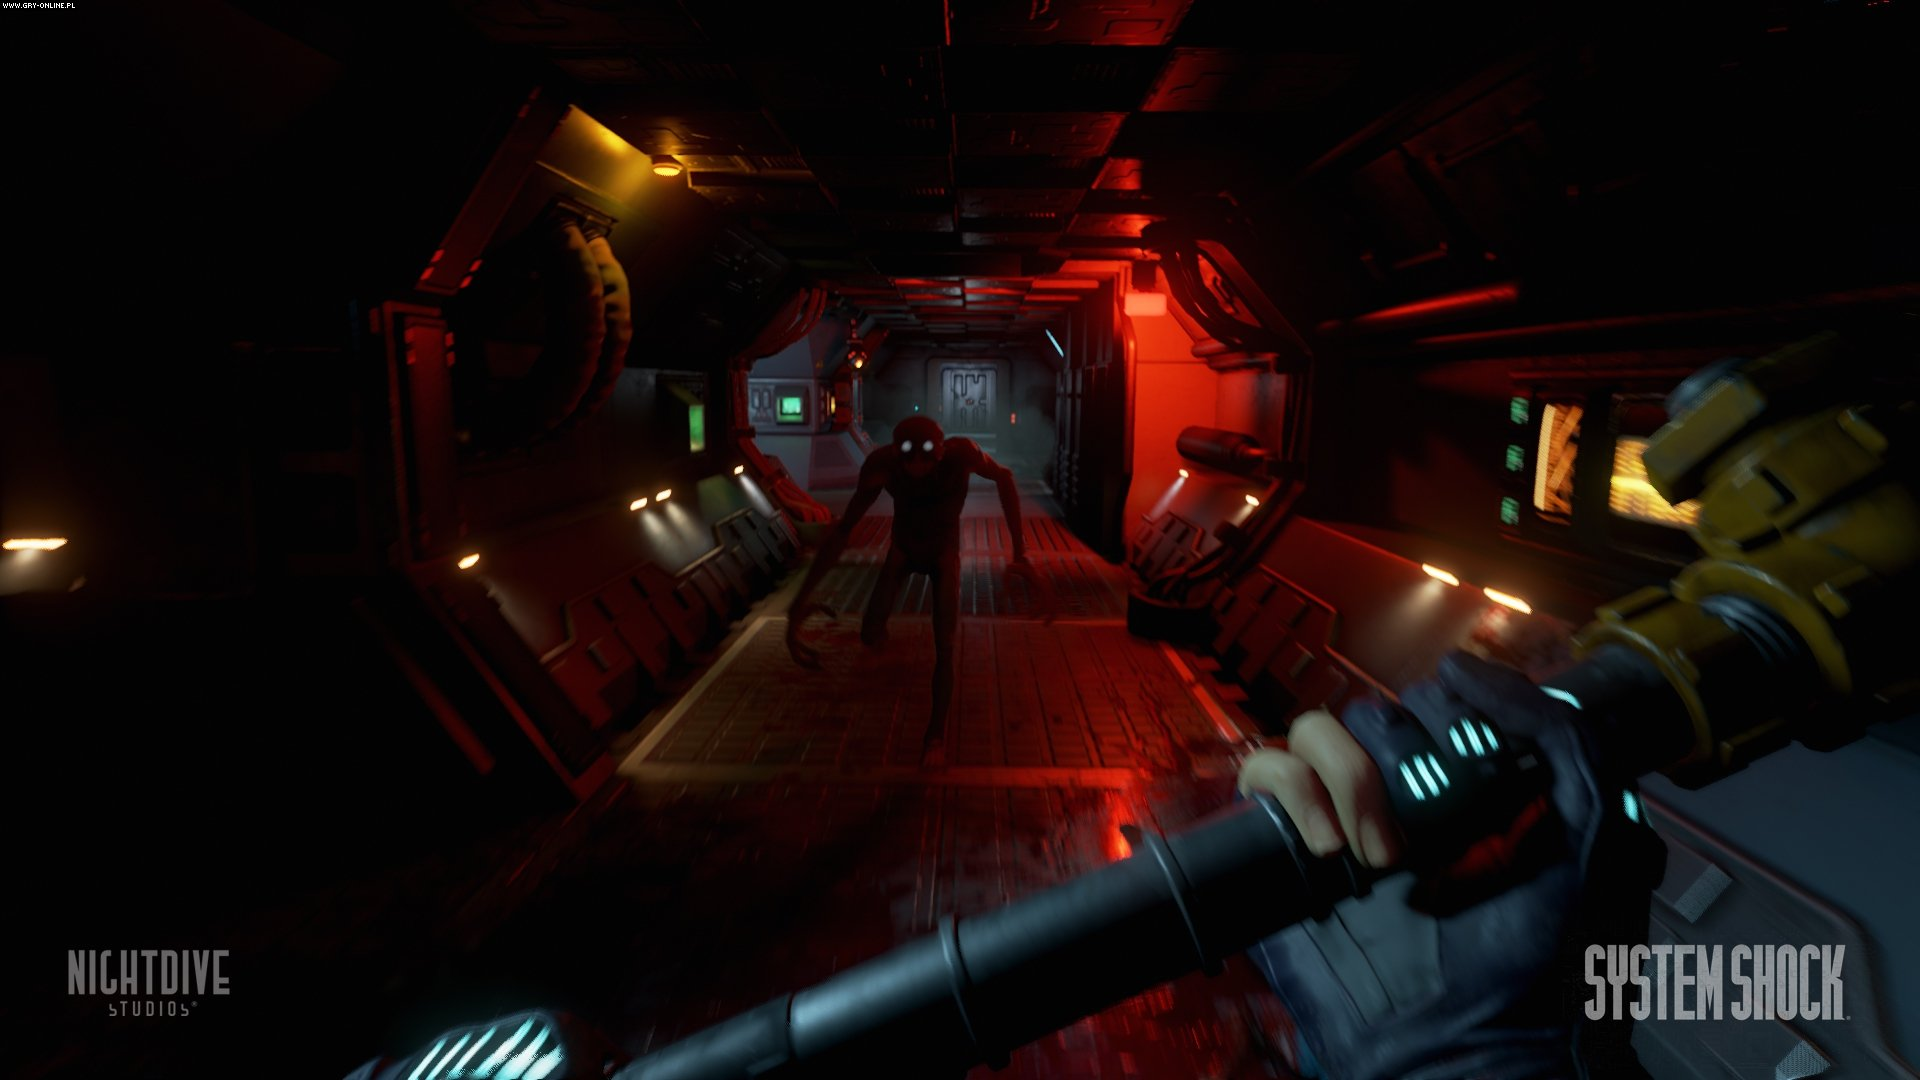 System Shock PC, PS4, XONE Gry Screen 2/19, Night Dive Studios